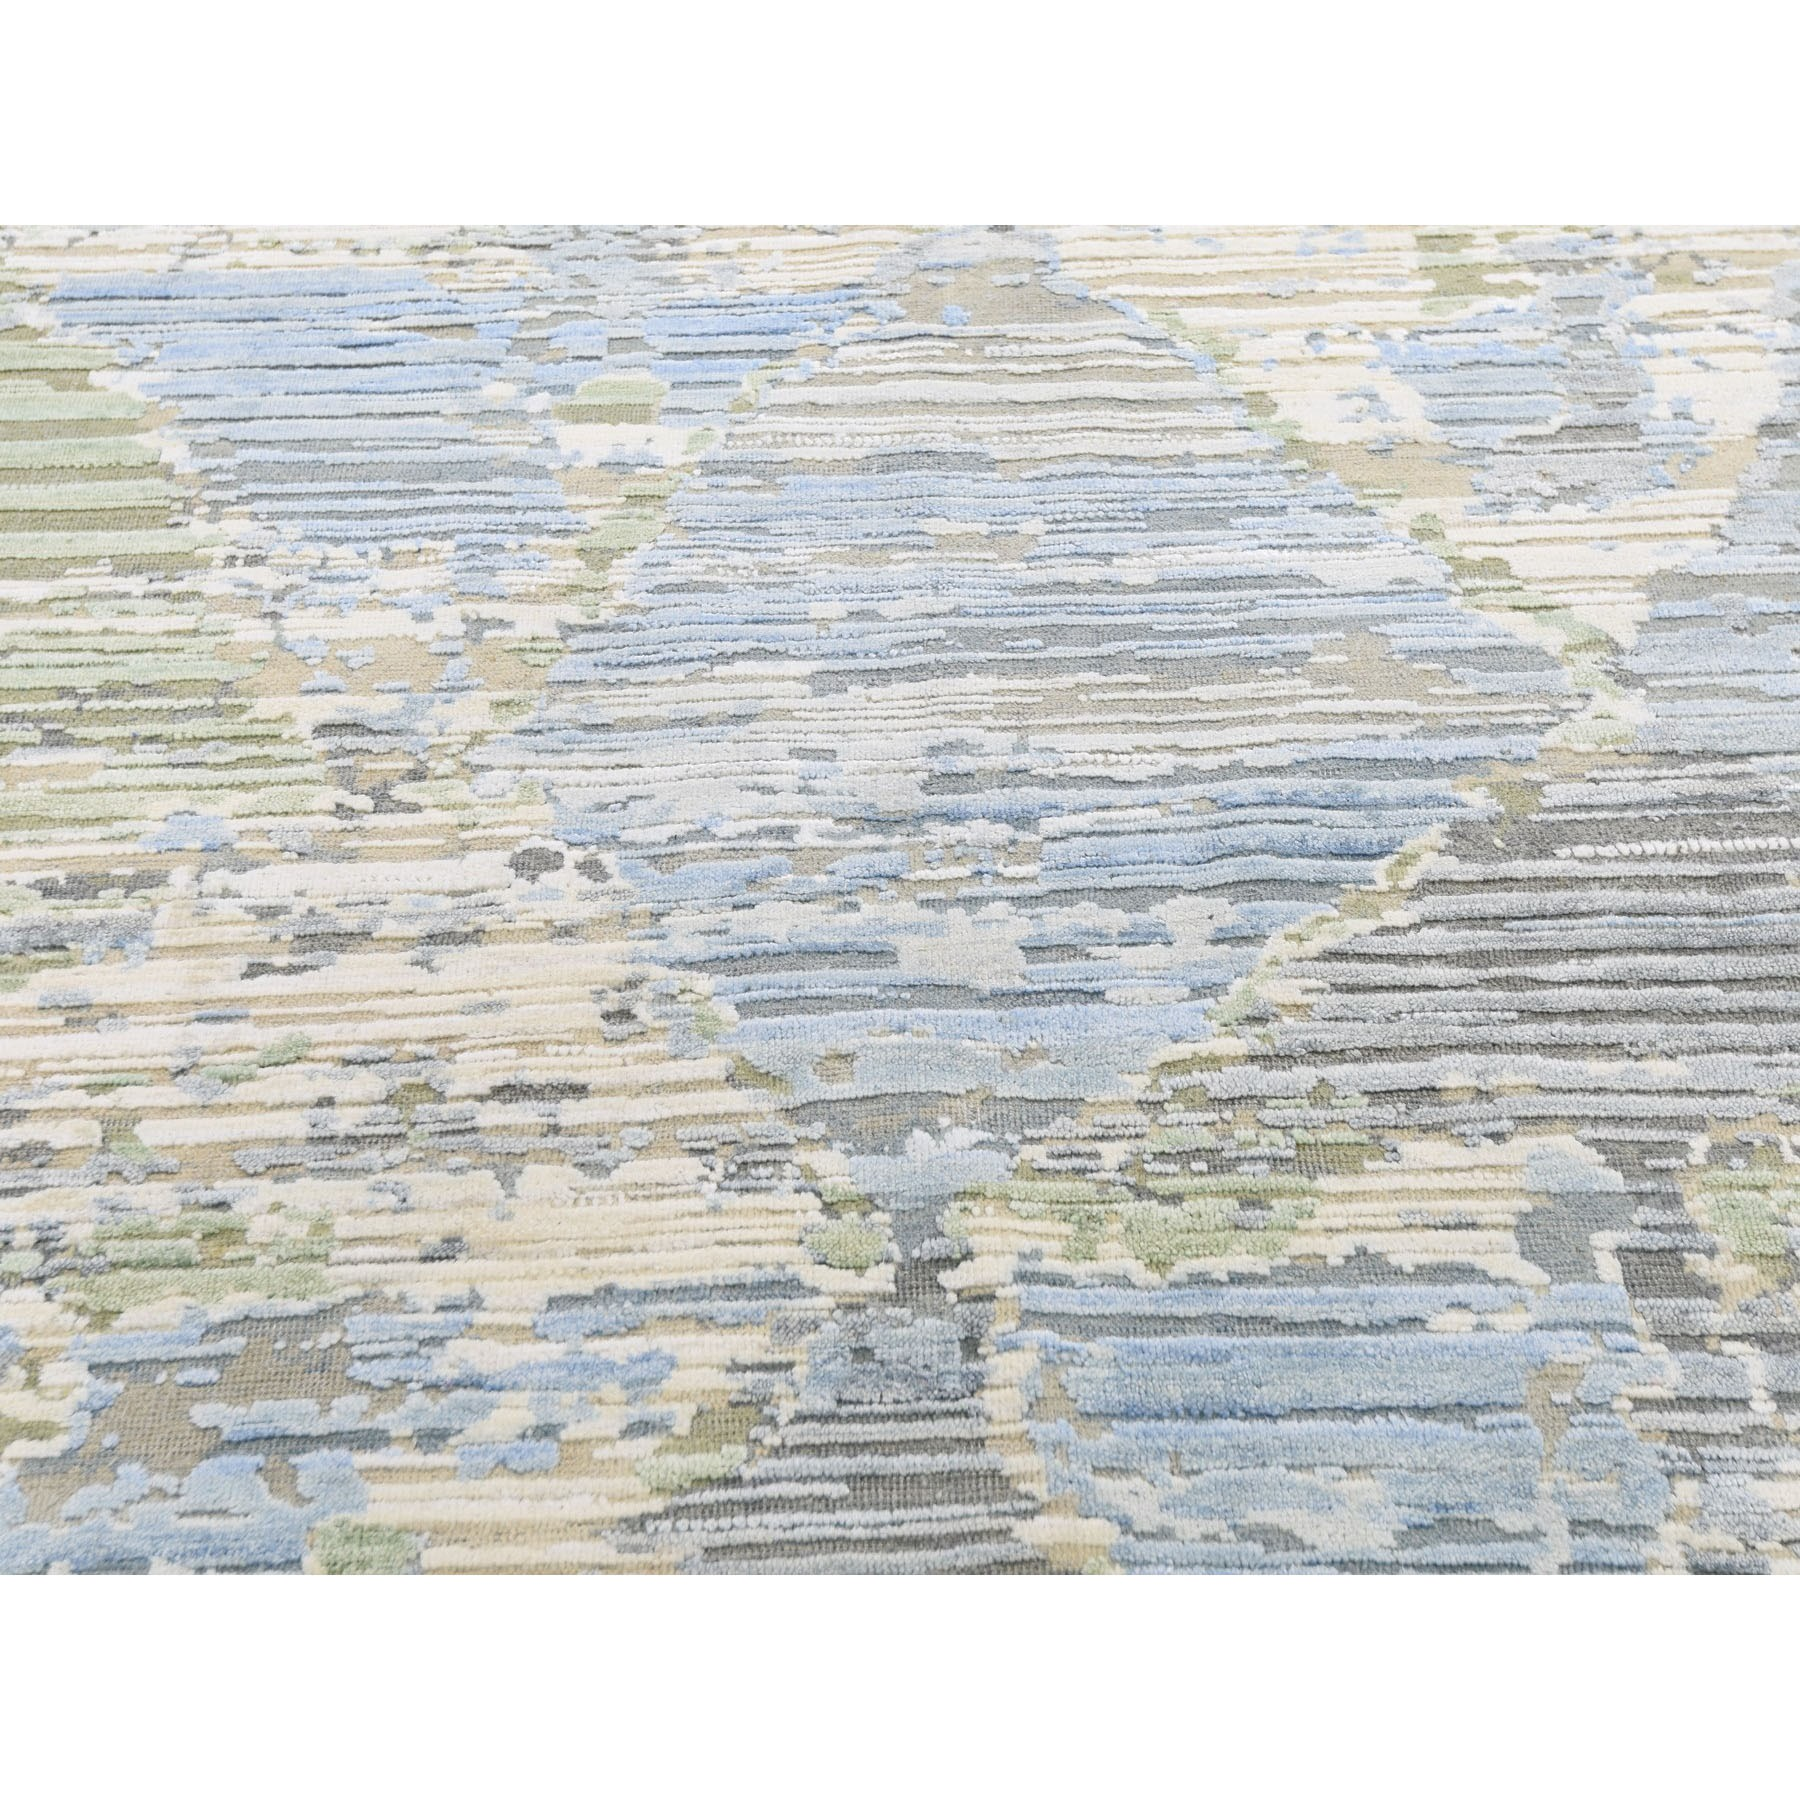 8'x10' THE PASTEL COLLECTION, Silk With Textured Wool Hand Knotted Oriental Rug